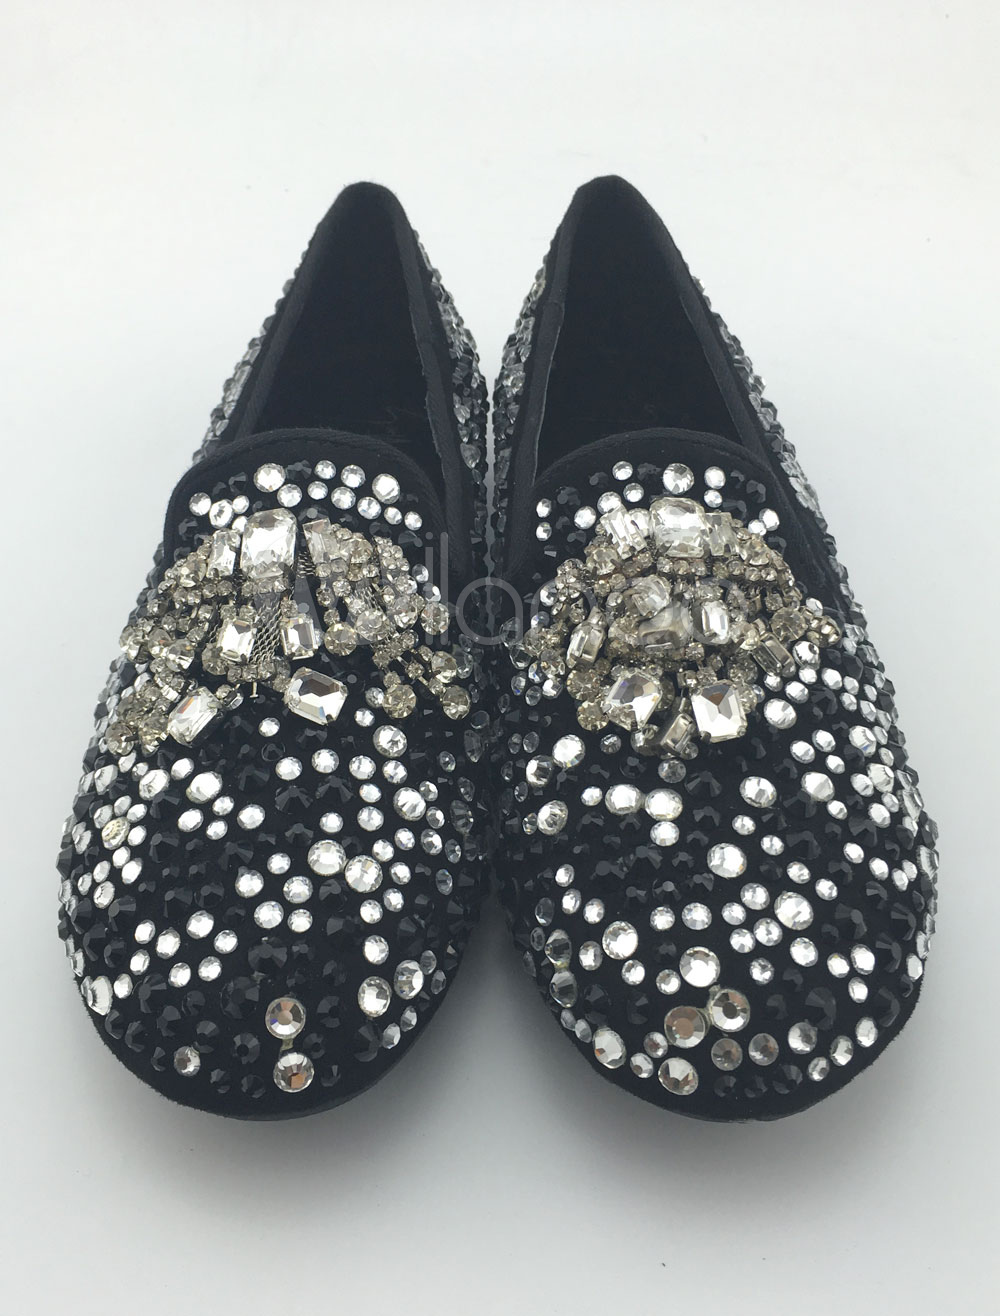 Buy Suede Men's Loafers Crystal Studs Flat Shoes Rhinestones Black Slip On Shoes for $116.99 in Milanoo store